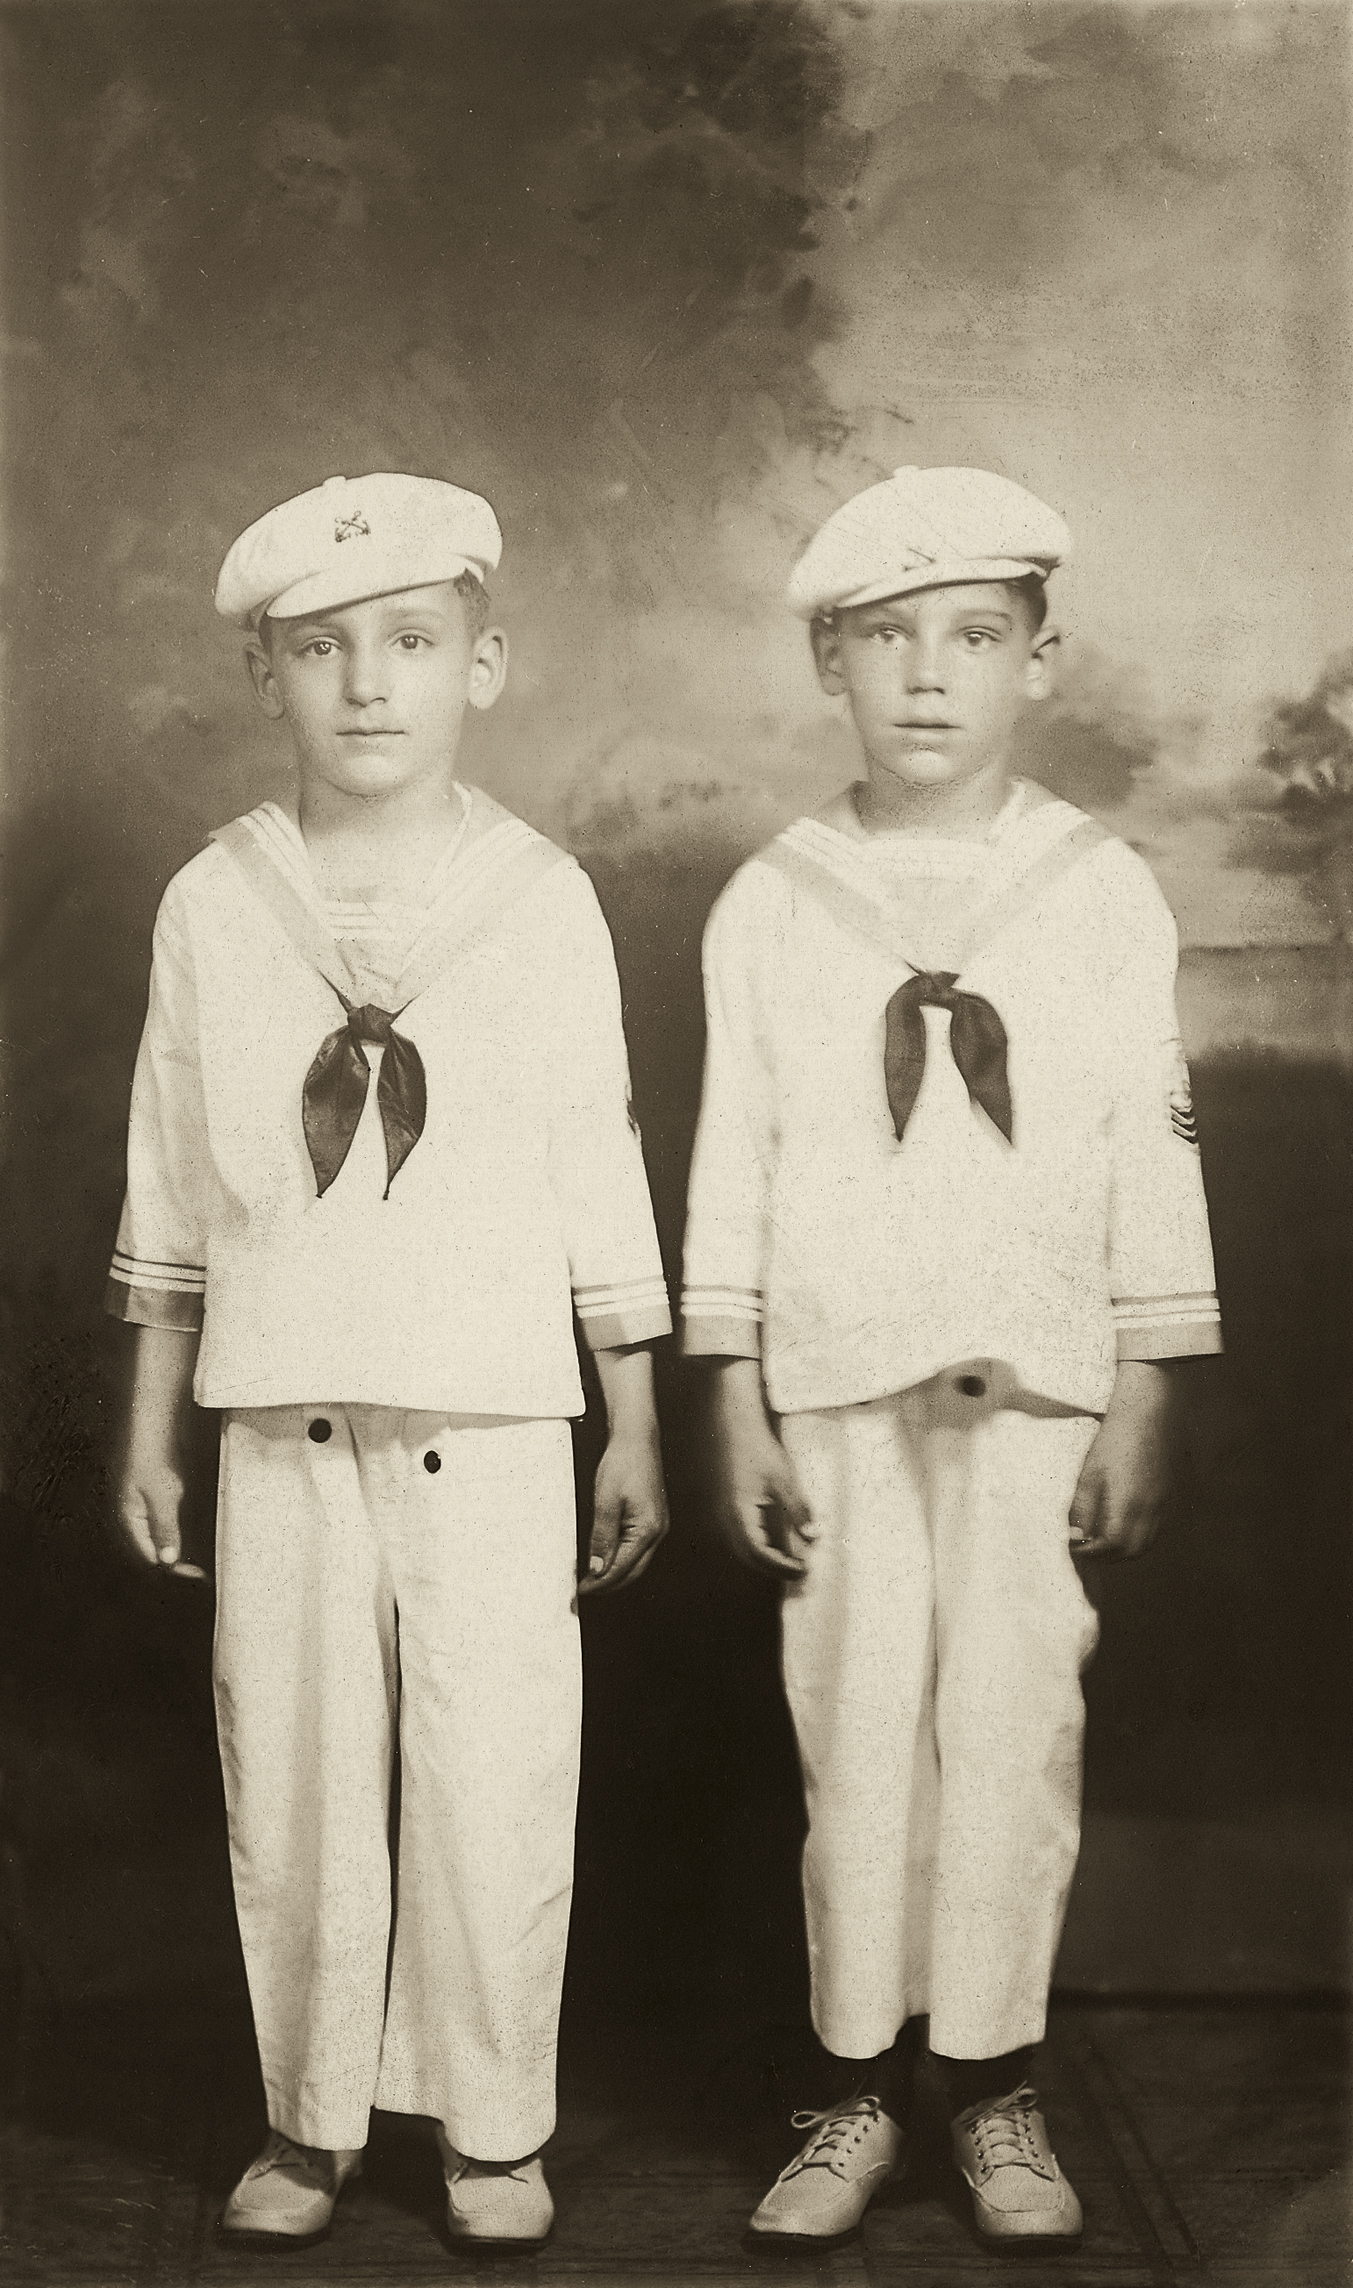 Joseph and Robert Caulfield, 1936